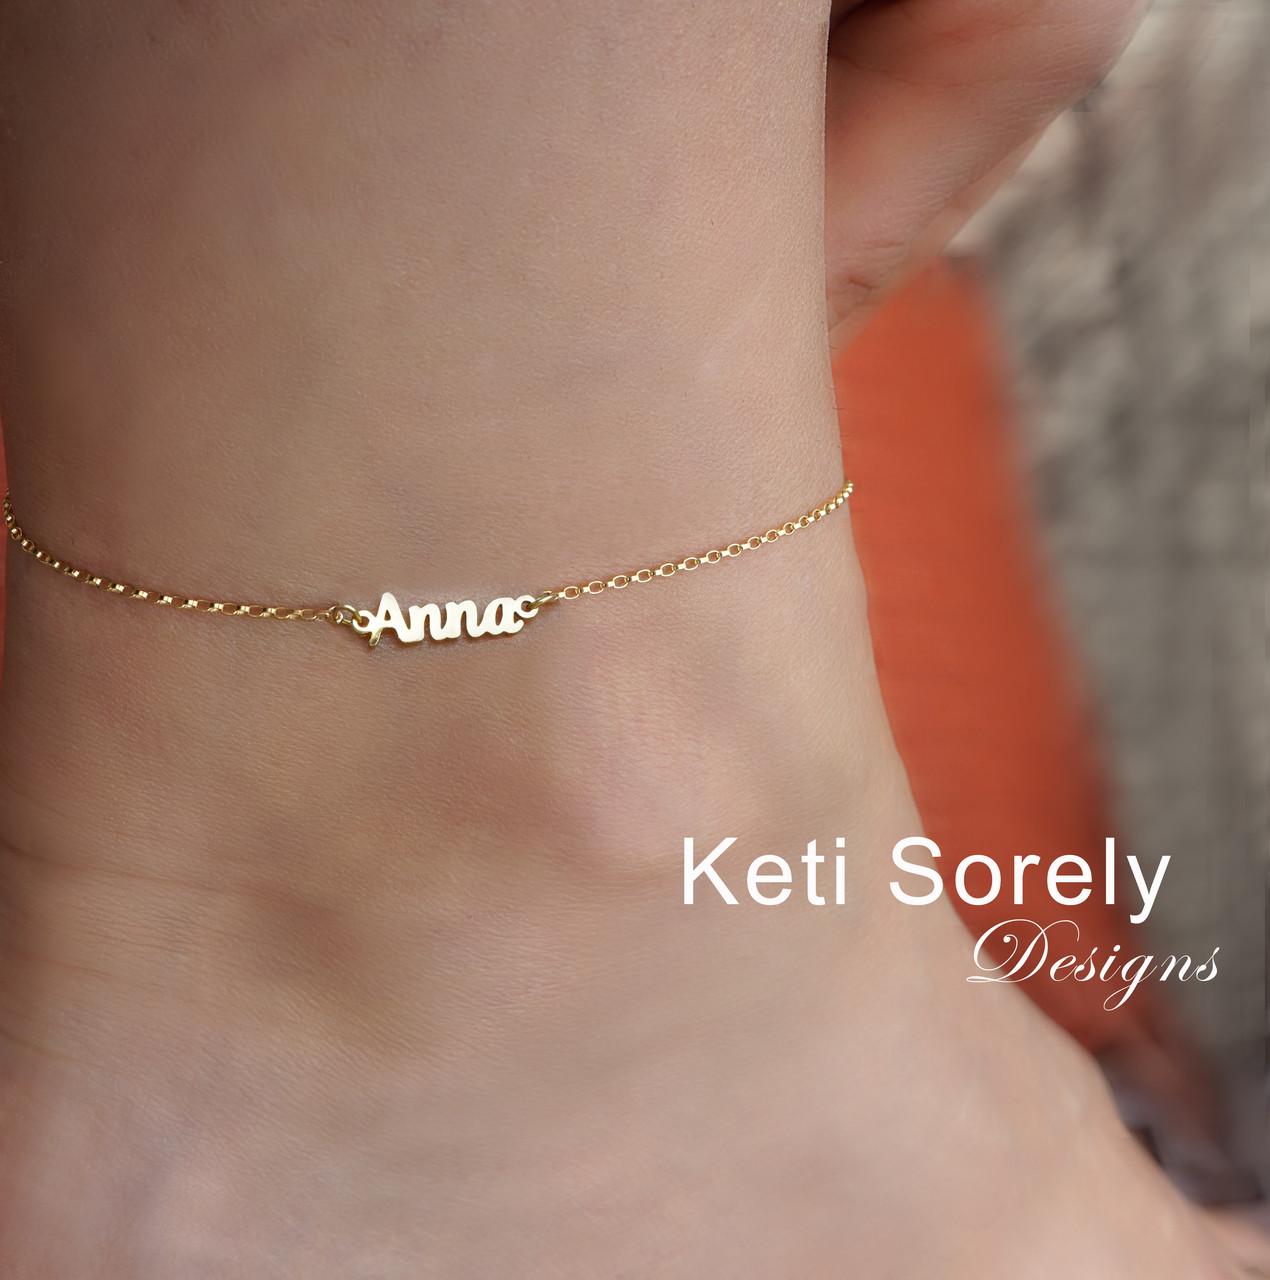 Can anklet adult jewlery that